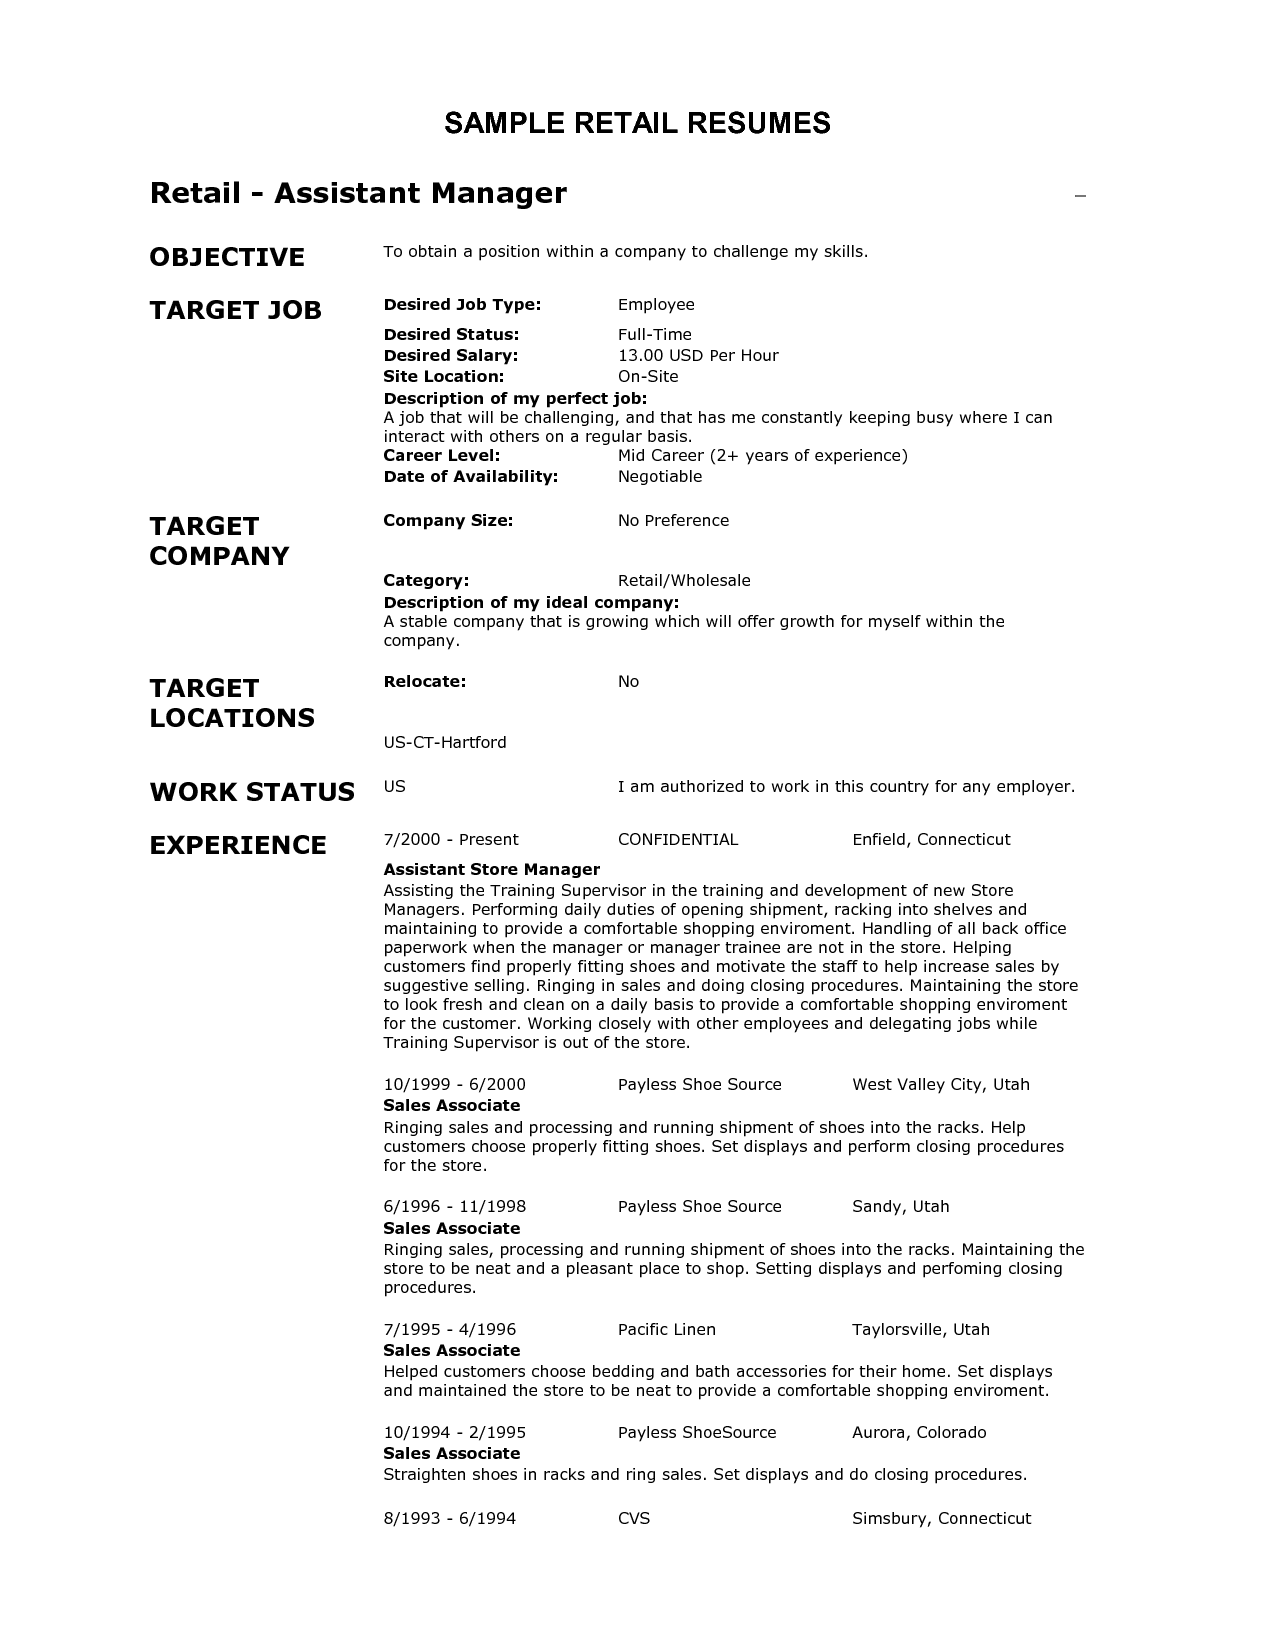 resume for retail position - Resume Examples For Retail Sales